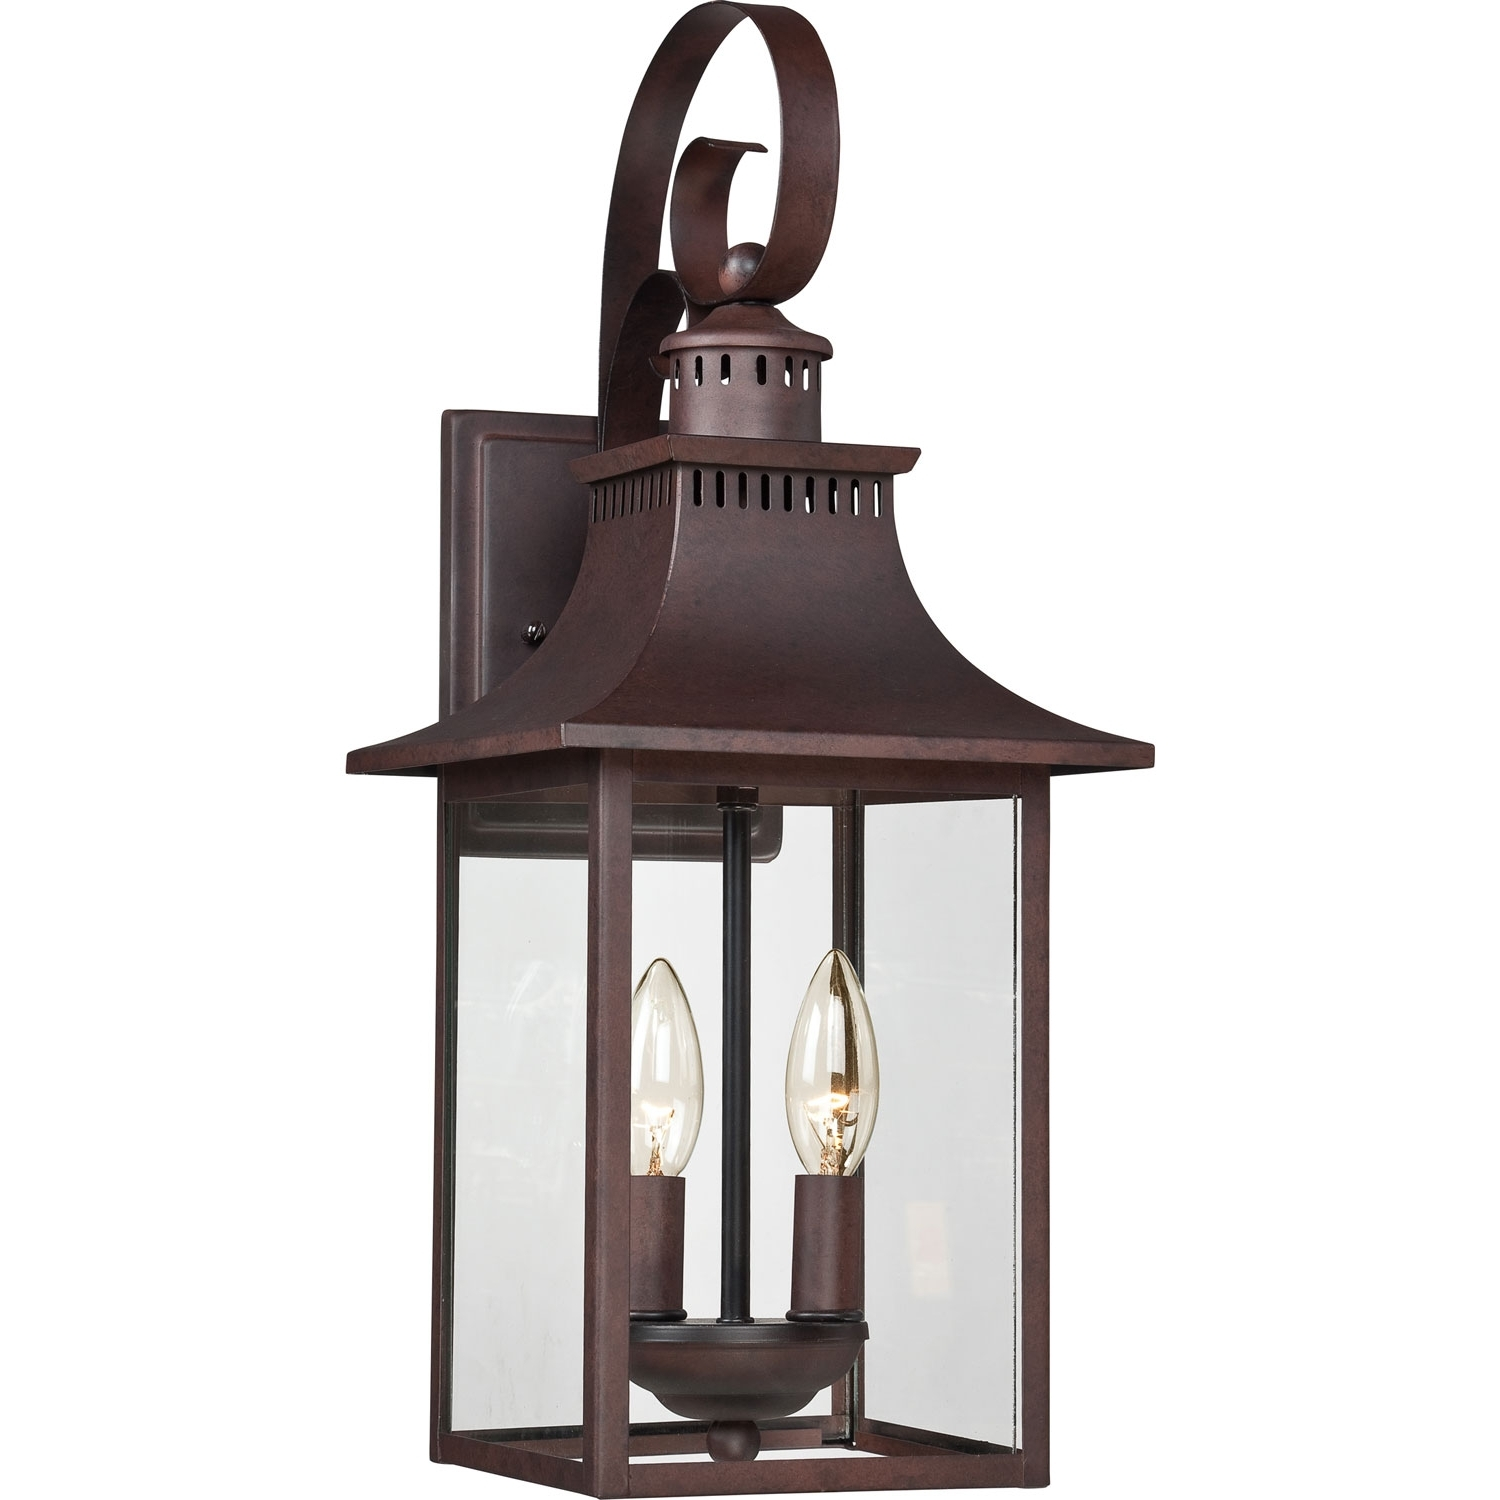 Tnjapan ~ Lighting Ideas For Your Home With Regard To Famous Made In Usa Outdoor Wall Lighting (View 17 of 20)